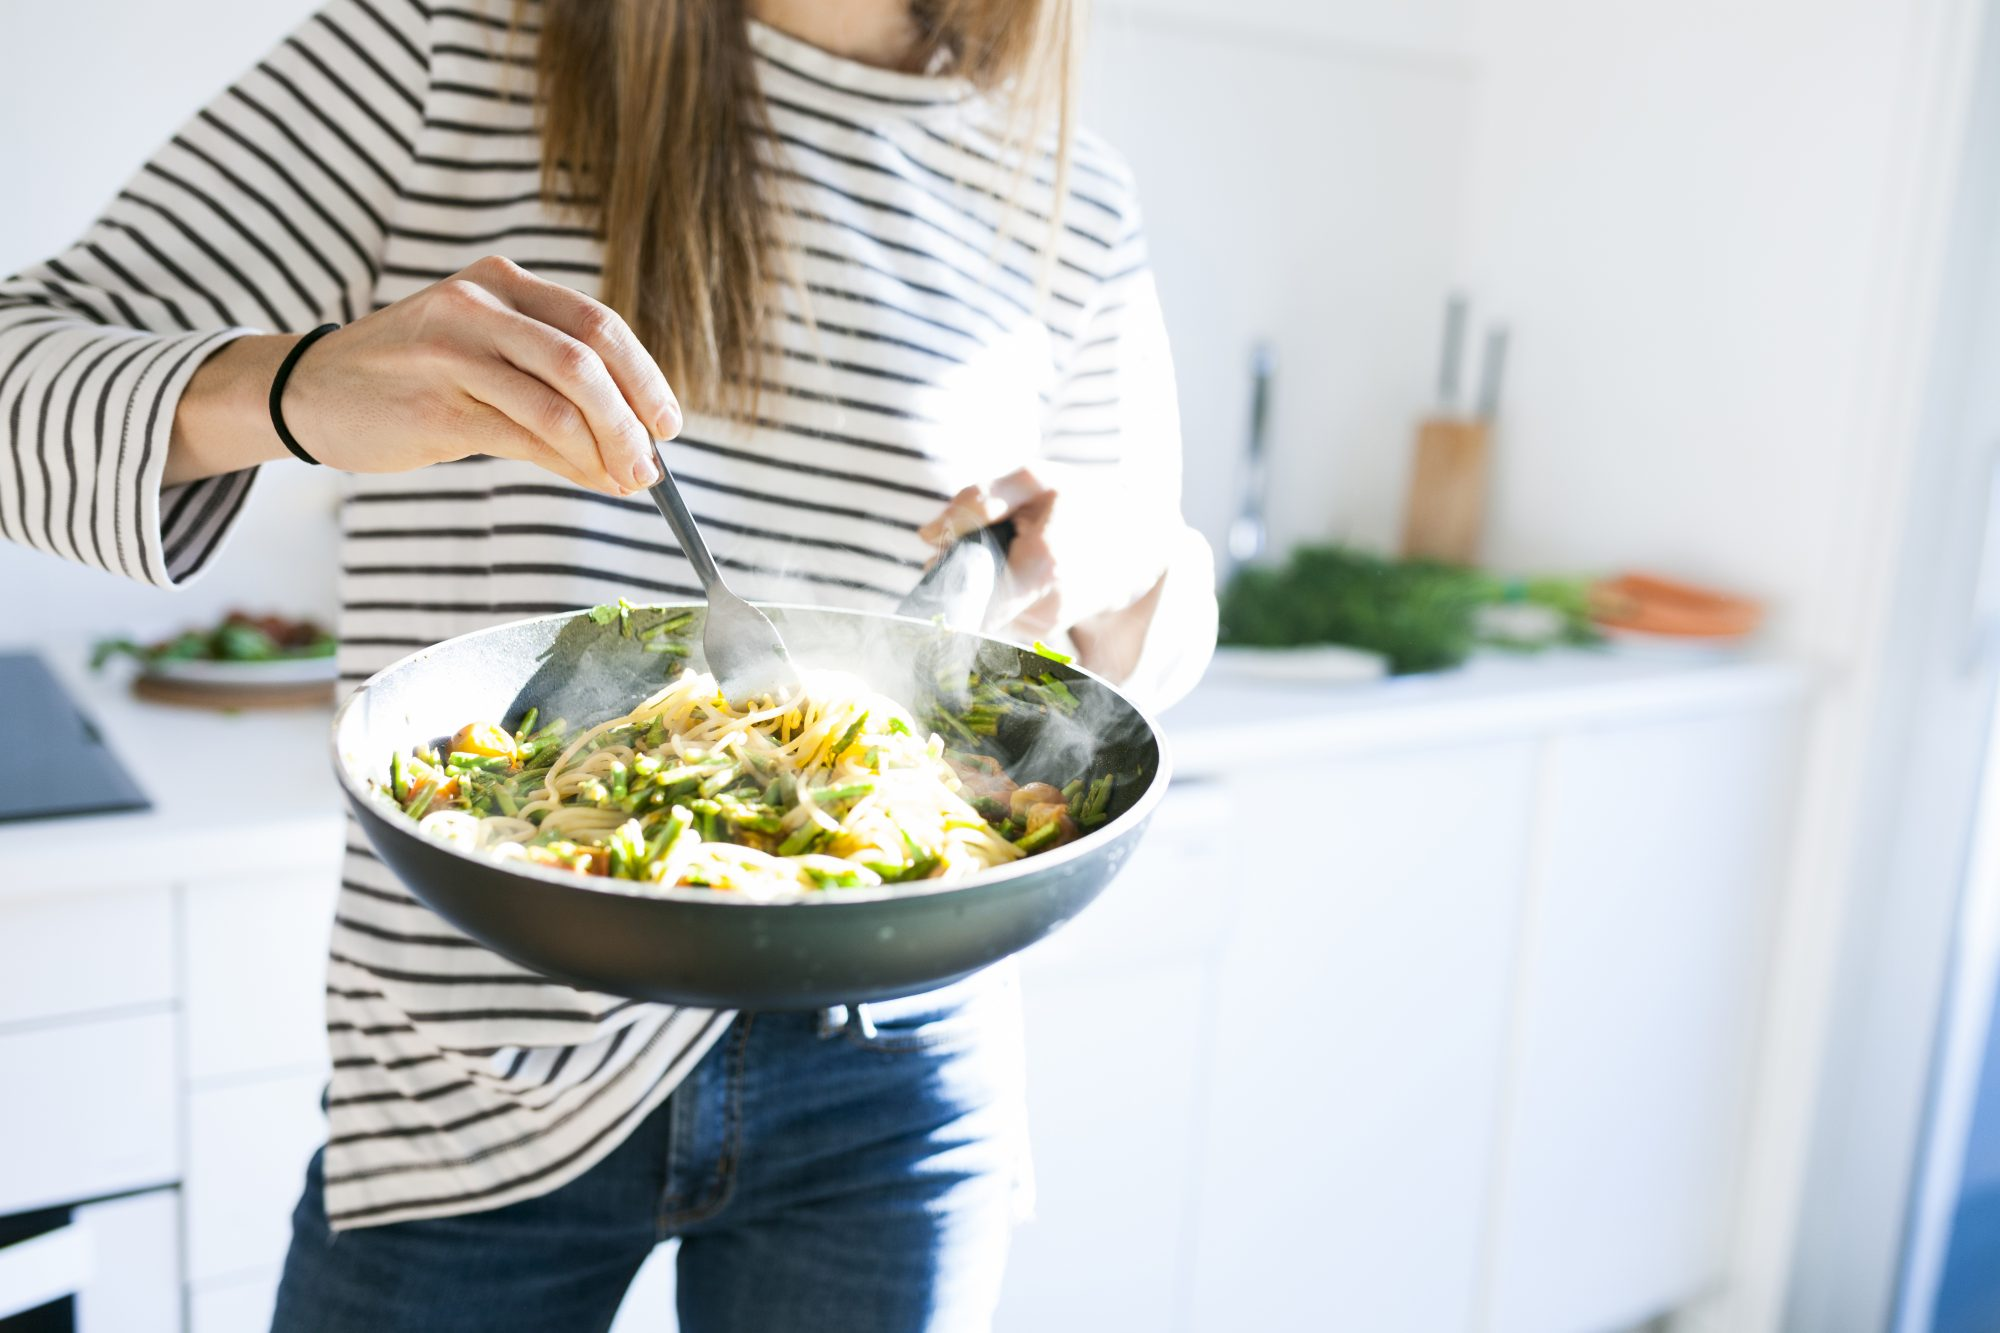 getty-healthy-eating-image